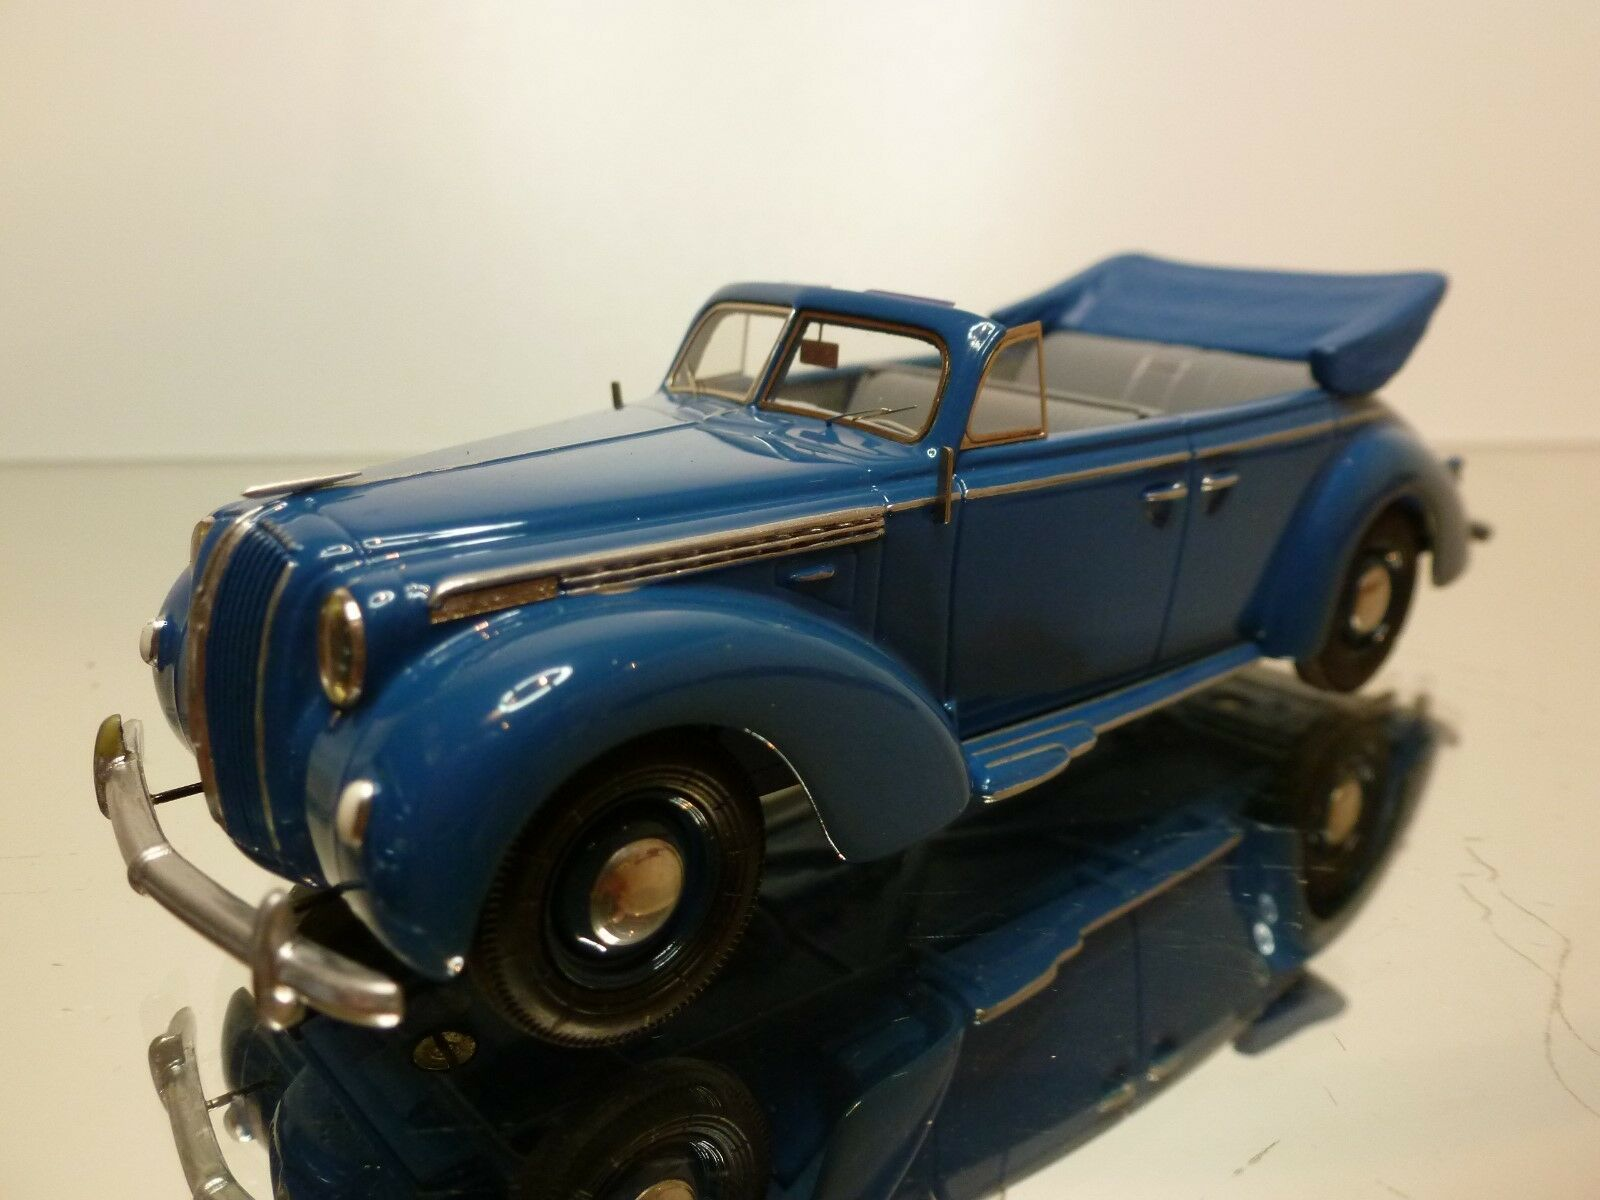 HOMBURG MODELL - OPEL ADMIRAL 1938 CABRIOLET -  1 43 - EXCELLENT CONDITION - 18